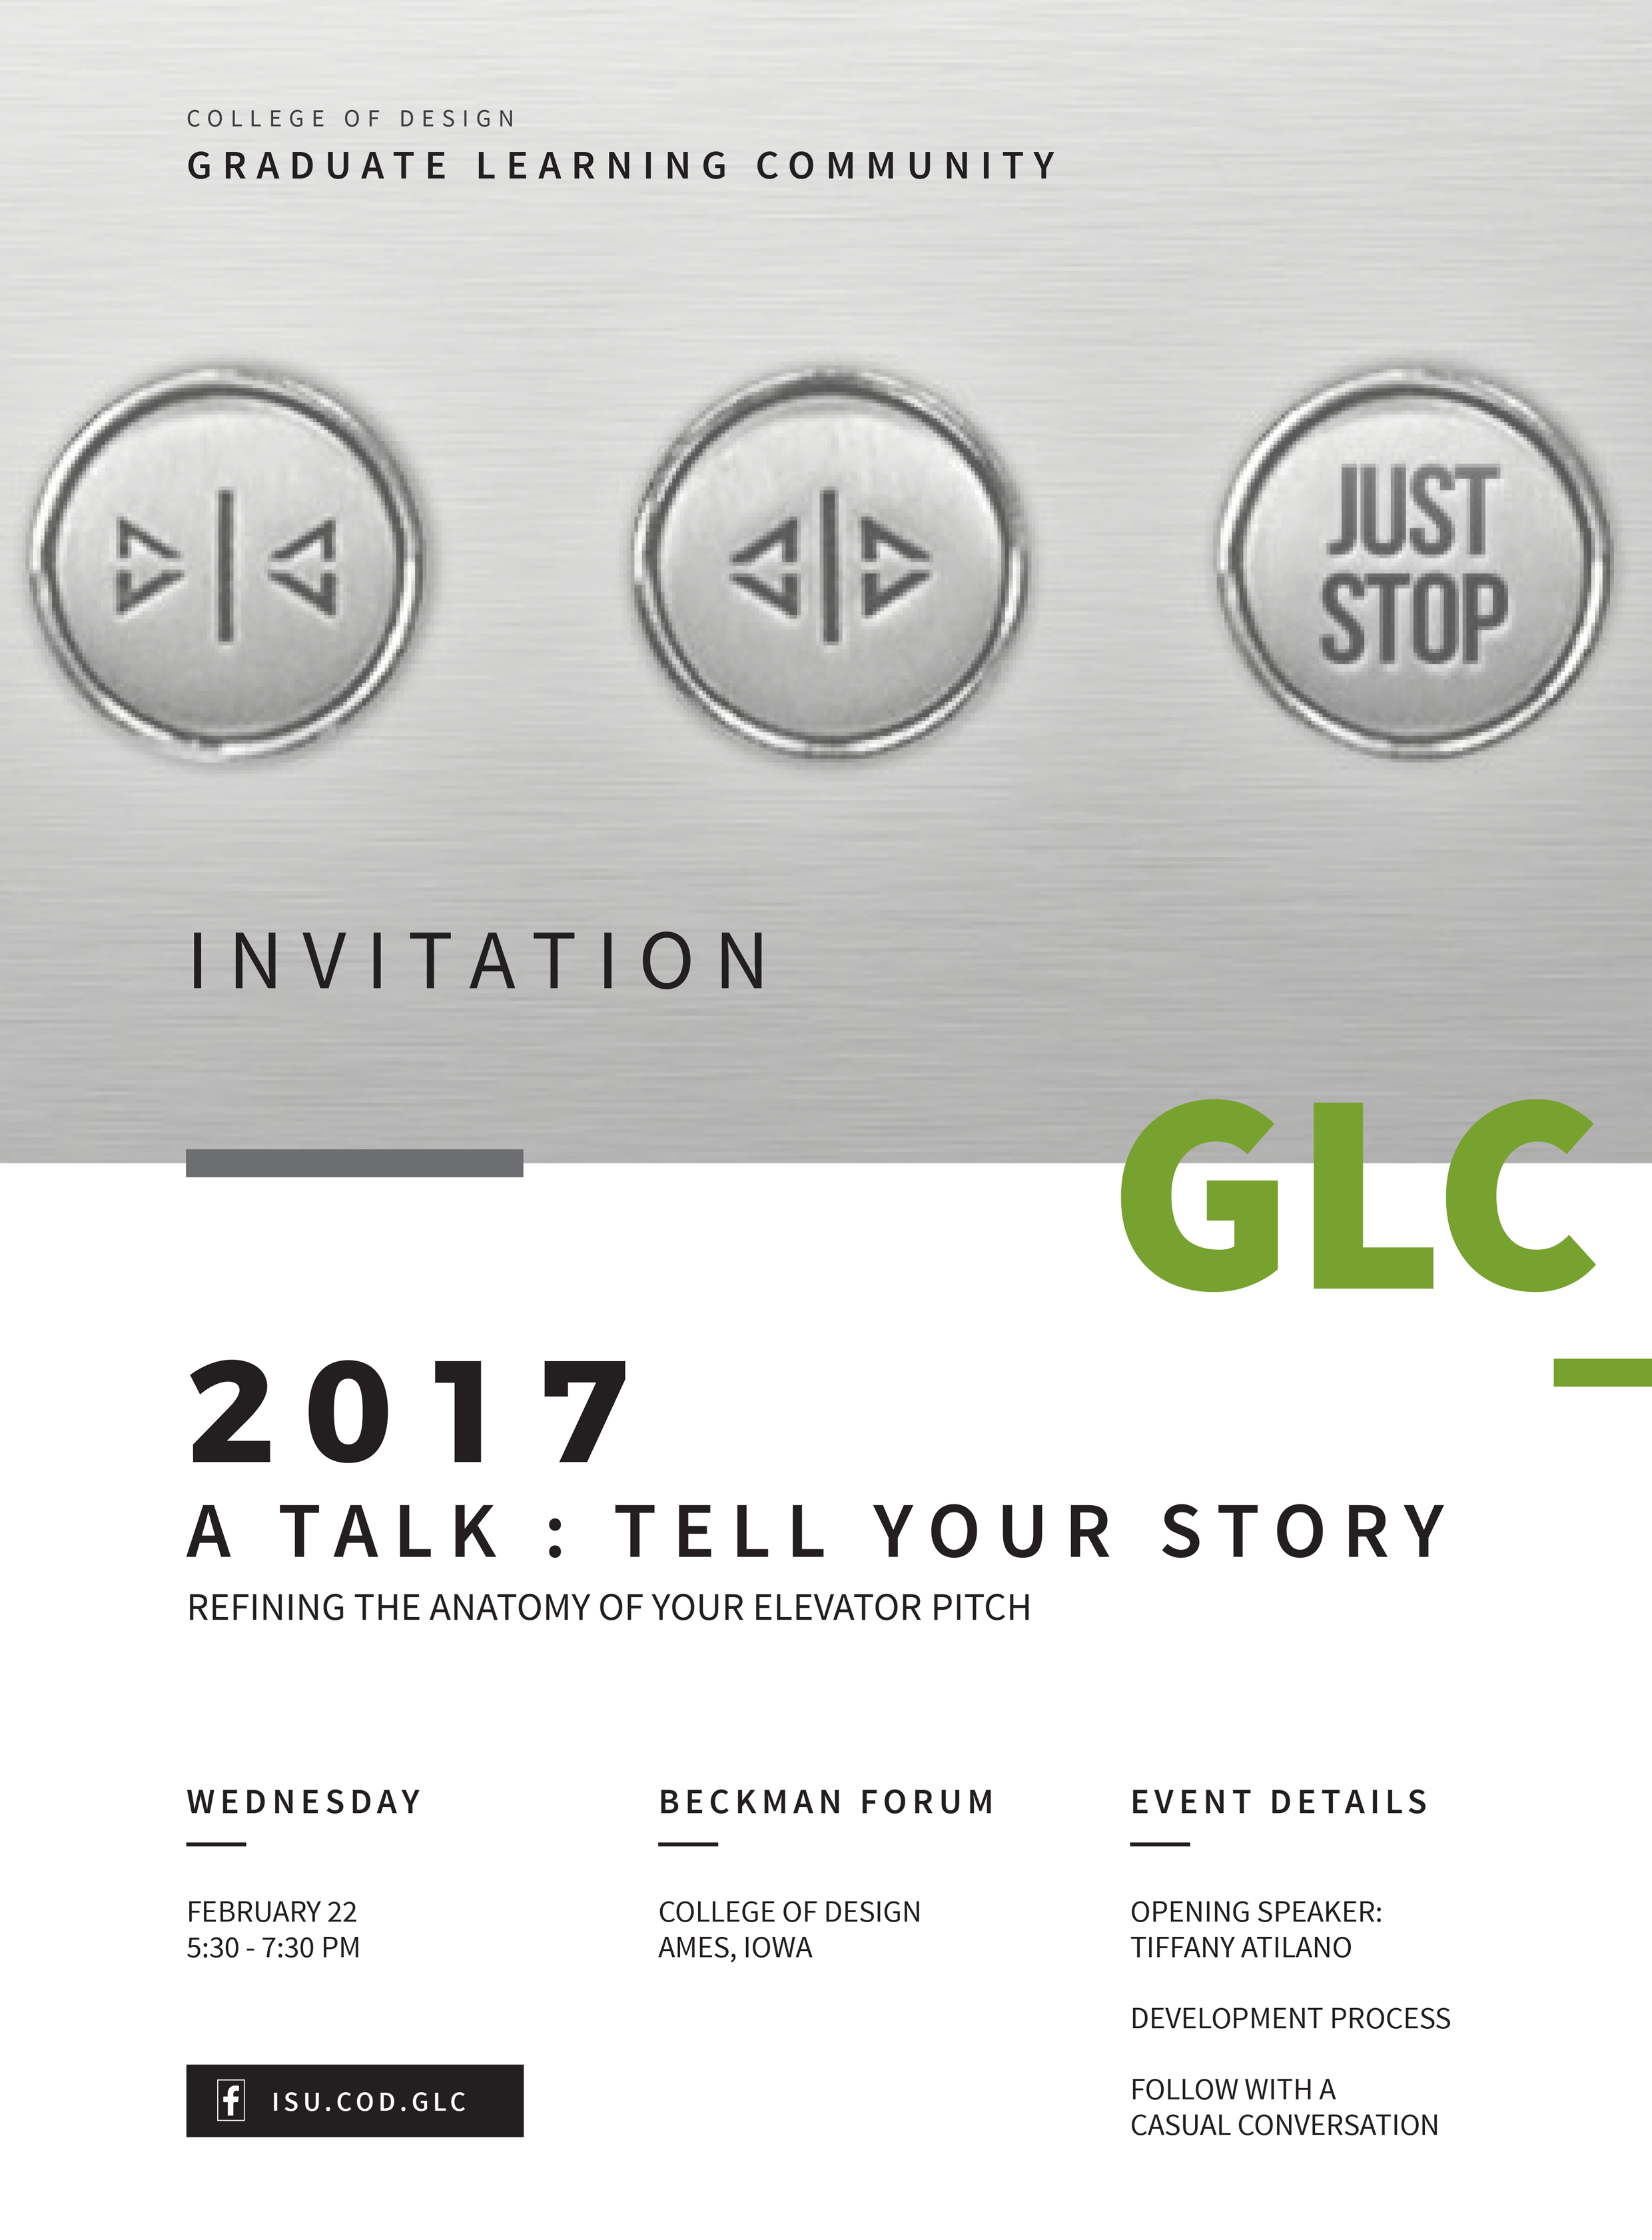 tell your story refining the anatomy of your elevator pitch a talk tell your story